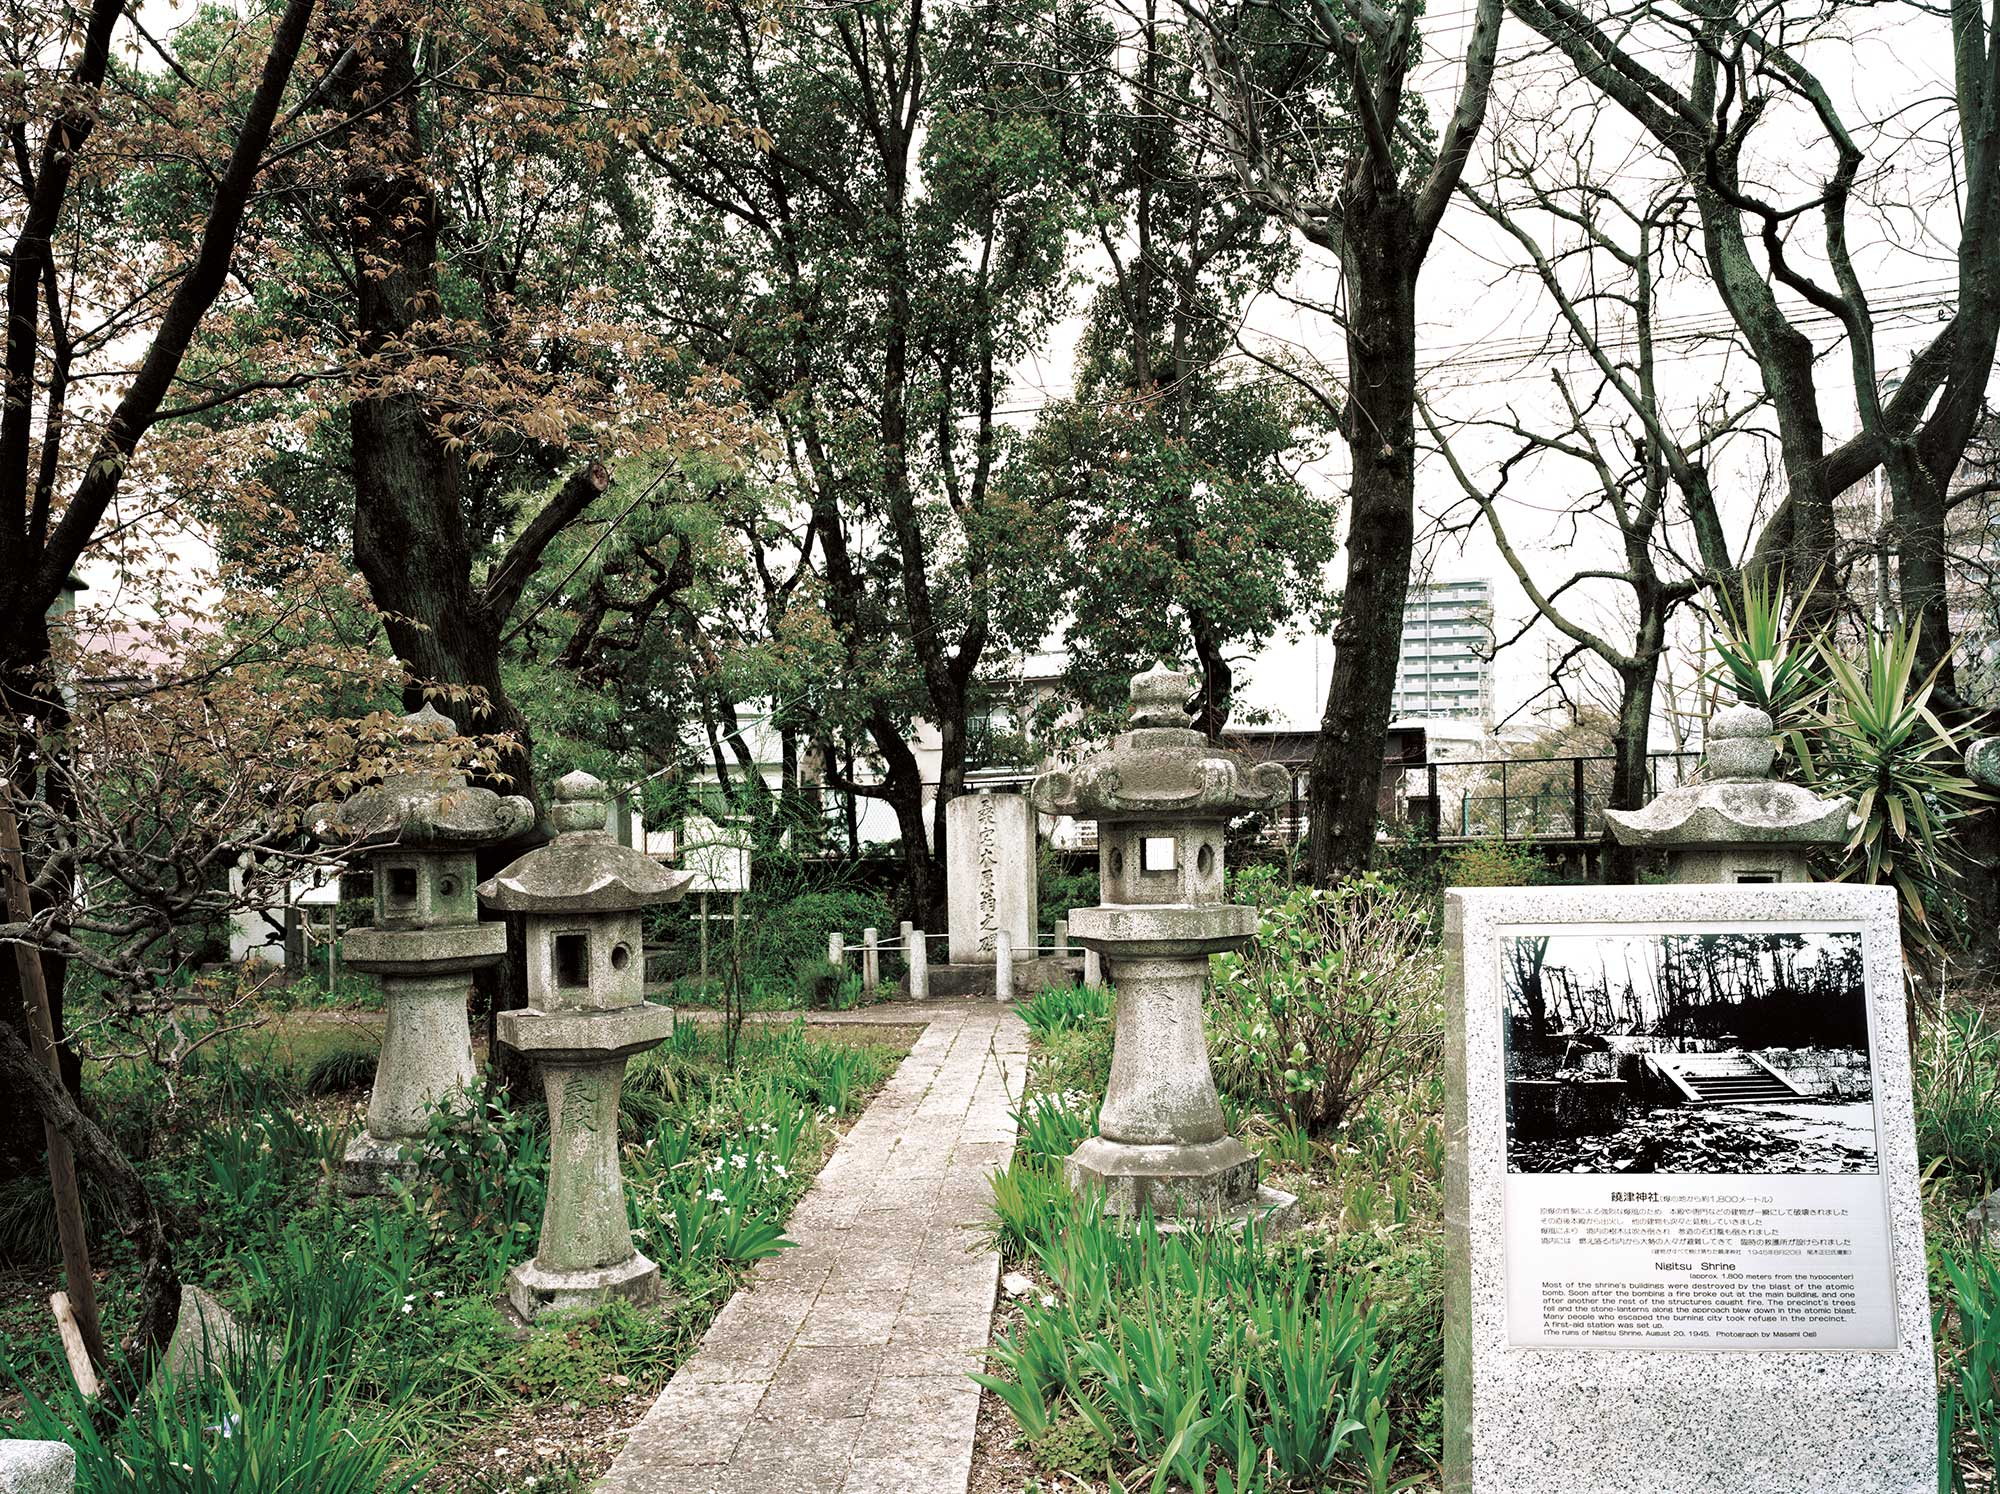 The Ruins of Nigitsu Shrine, Hiroshima, about 1800 meters from the hypocenter, photograph by Masami Ogi, September 1945, April 2013, Chromogenic print, 30 x 40 inch.